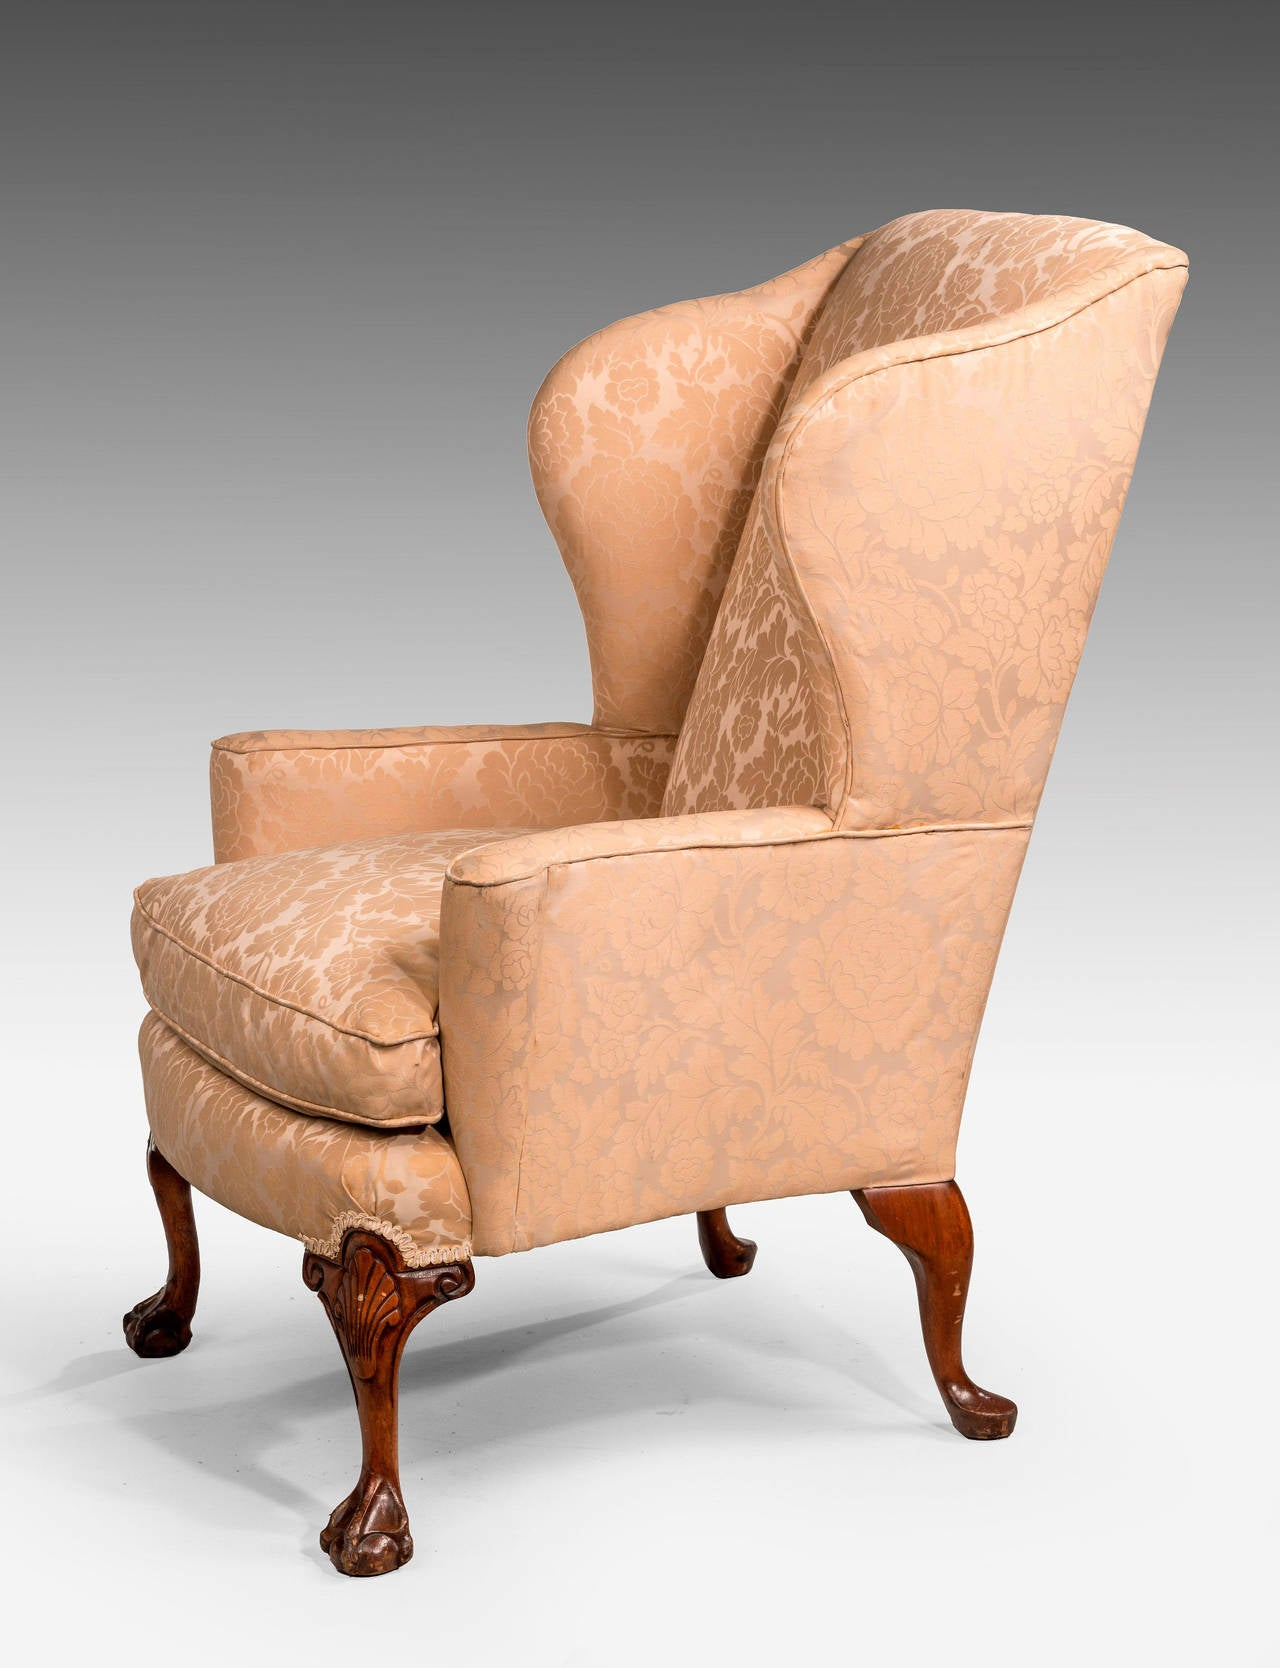 English George II Design Walnut-Framed Wing Chair For Sale